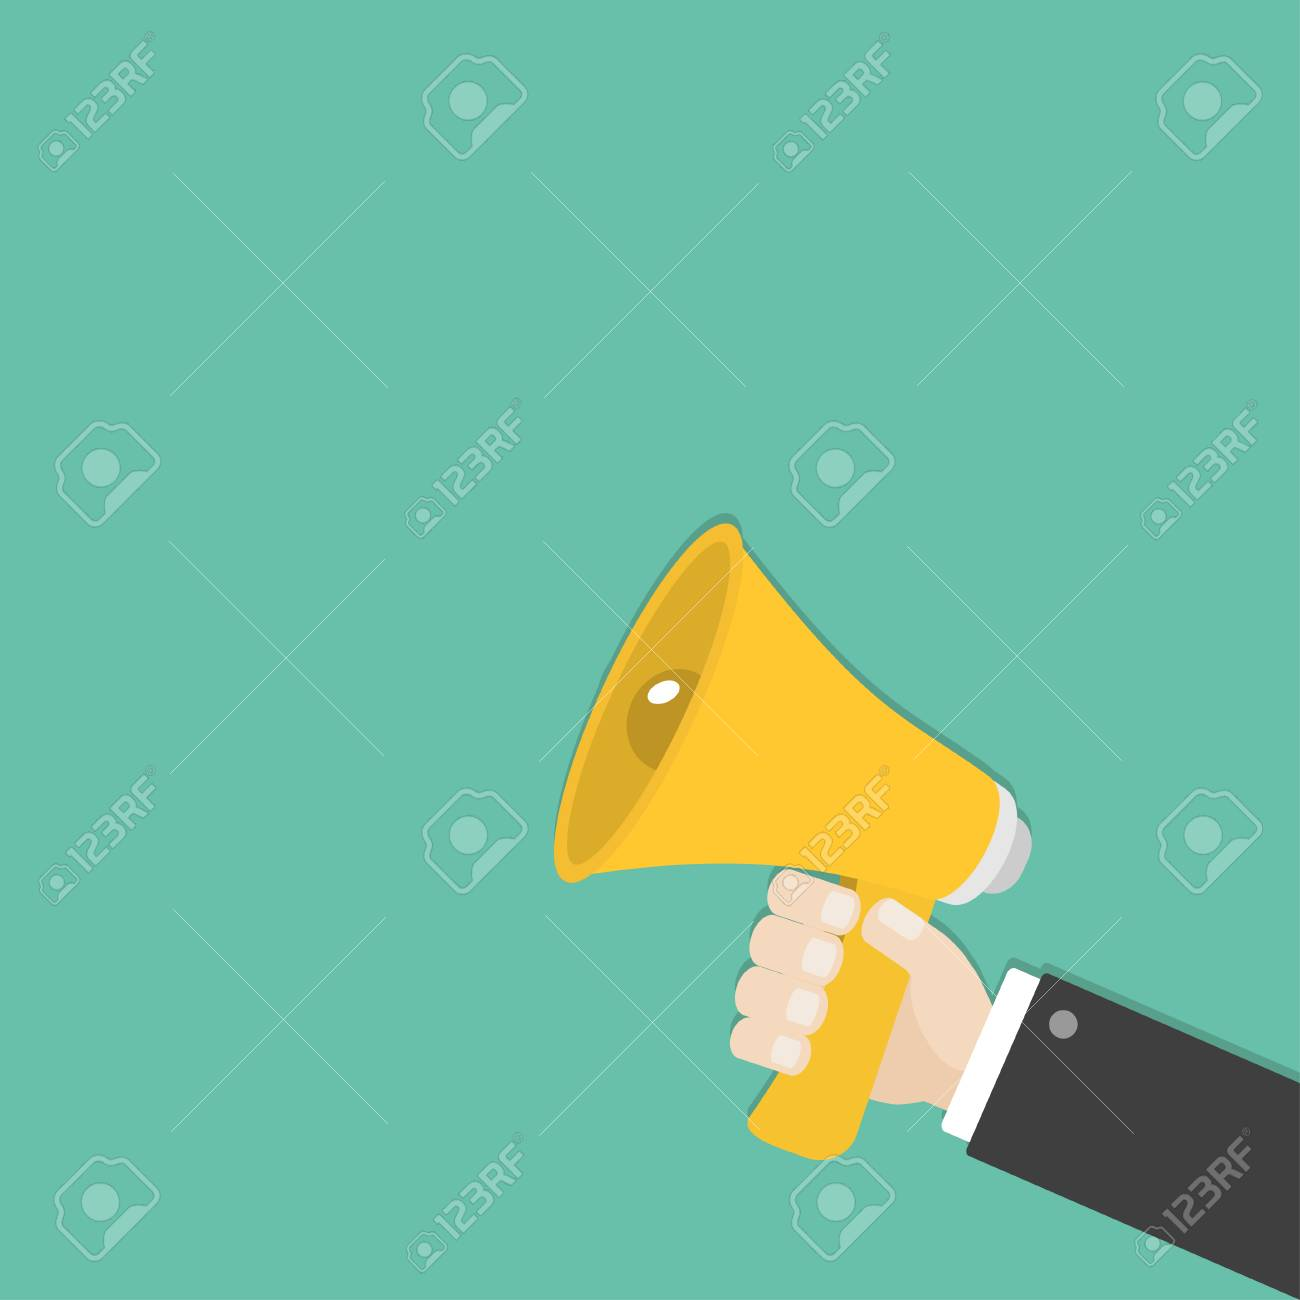 businessman hand holding megaphone speaker loudspeaker icon royalty free cliparts vectors and stock illustration image 80909500 businessman hand holding megaphone speaker loudspeaker icon